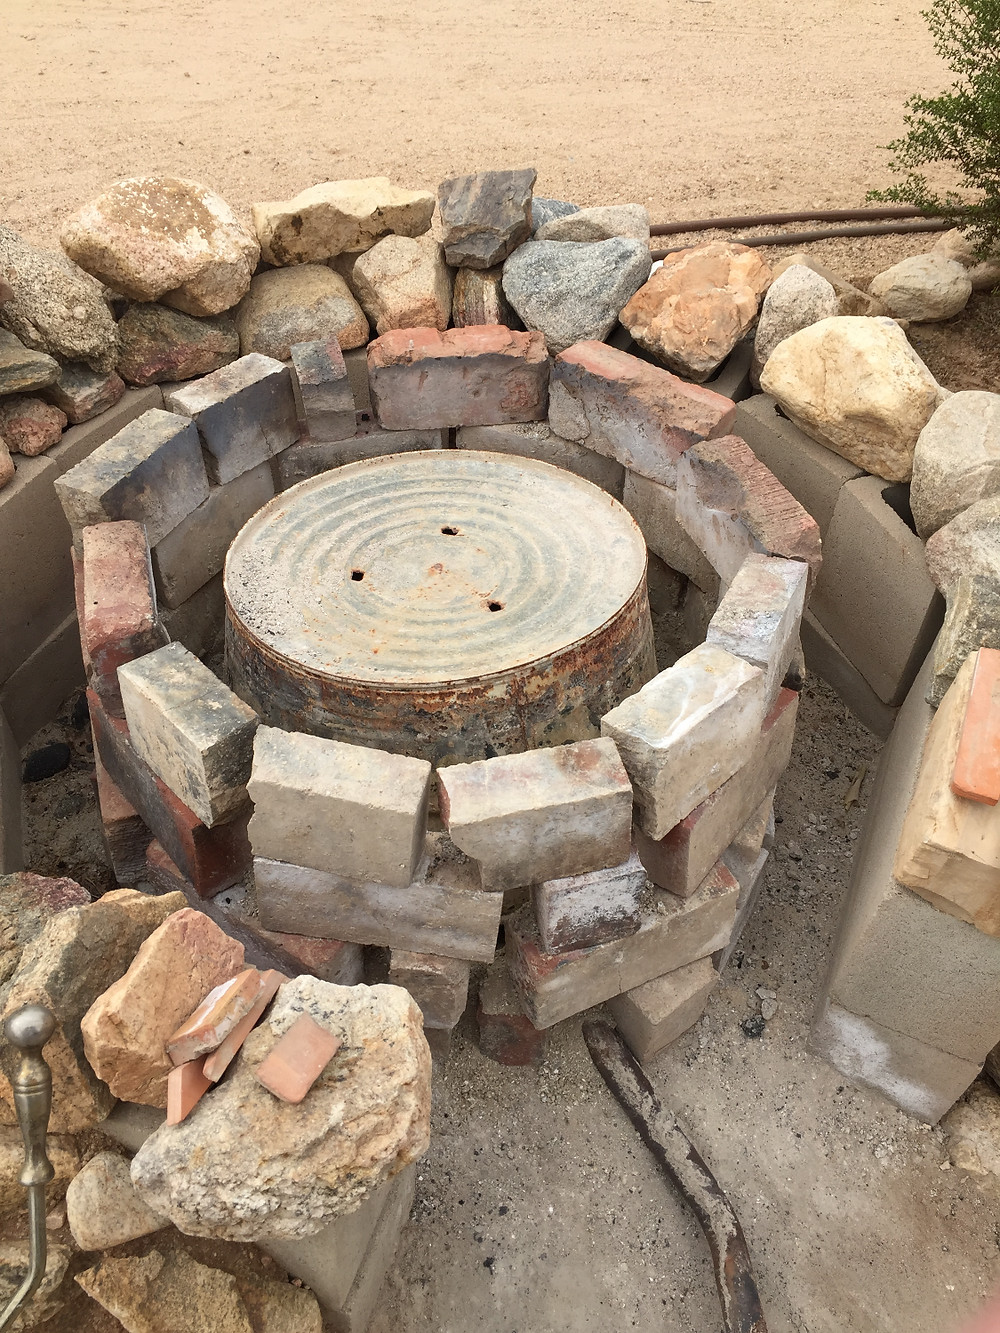 Mike Fagen's outdoor fire pit